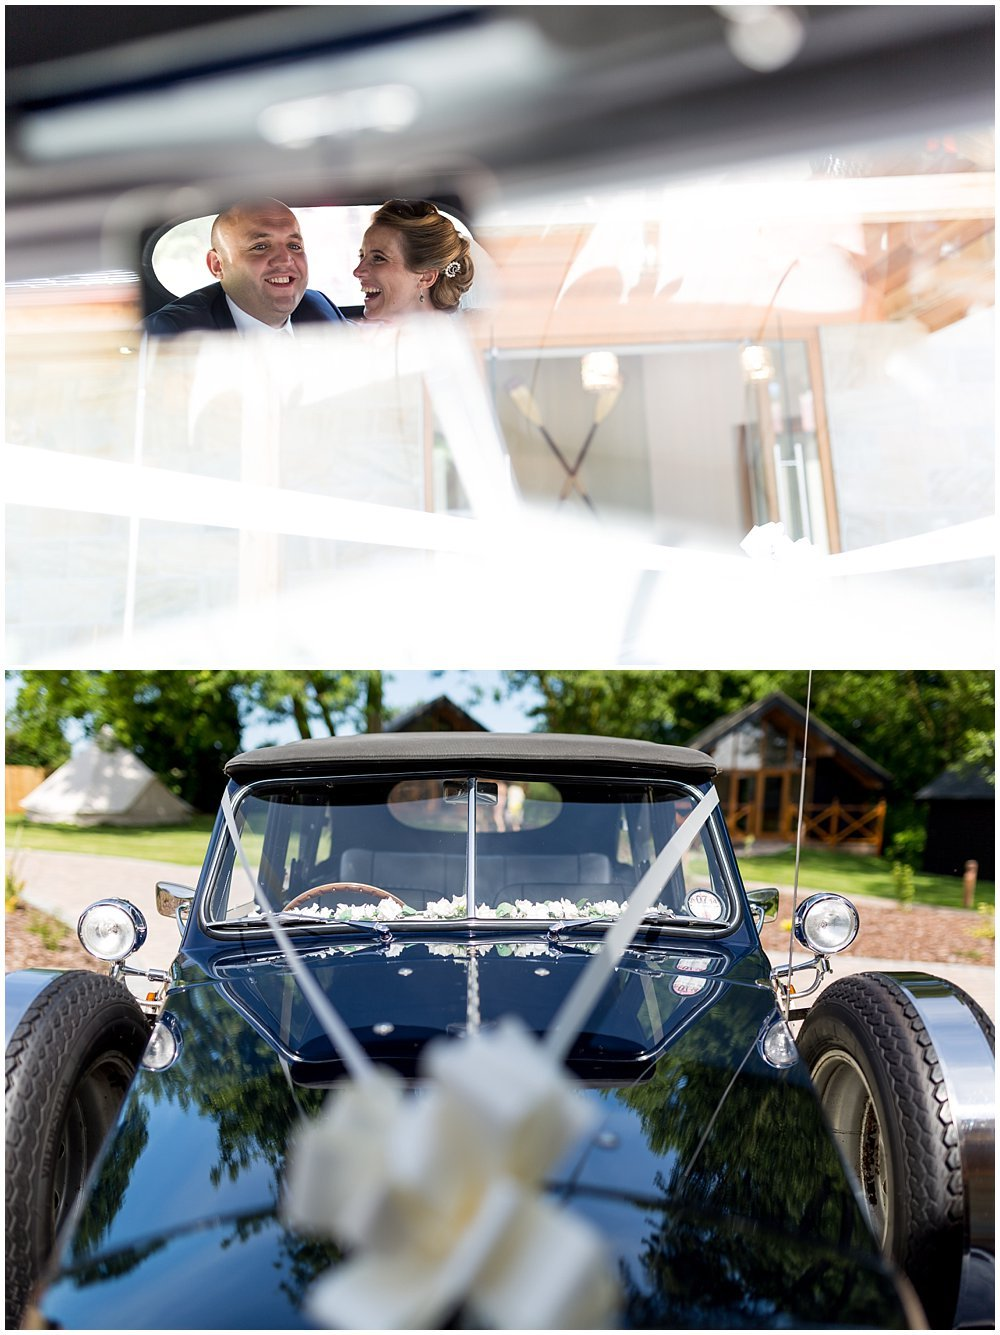 AMY AND DUNCAN NORWICH CATHEDRAL AND THE BOATHOUSE WEDDING - NORWICH AND NORFOLK WEDDING PHOTOGRAPHER 24